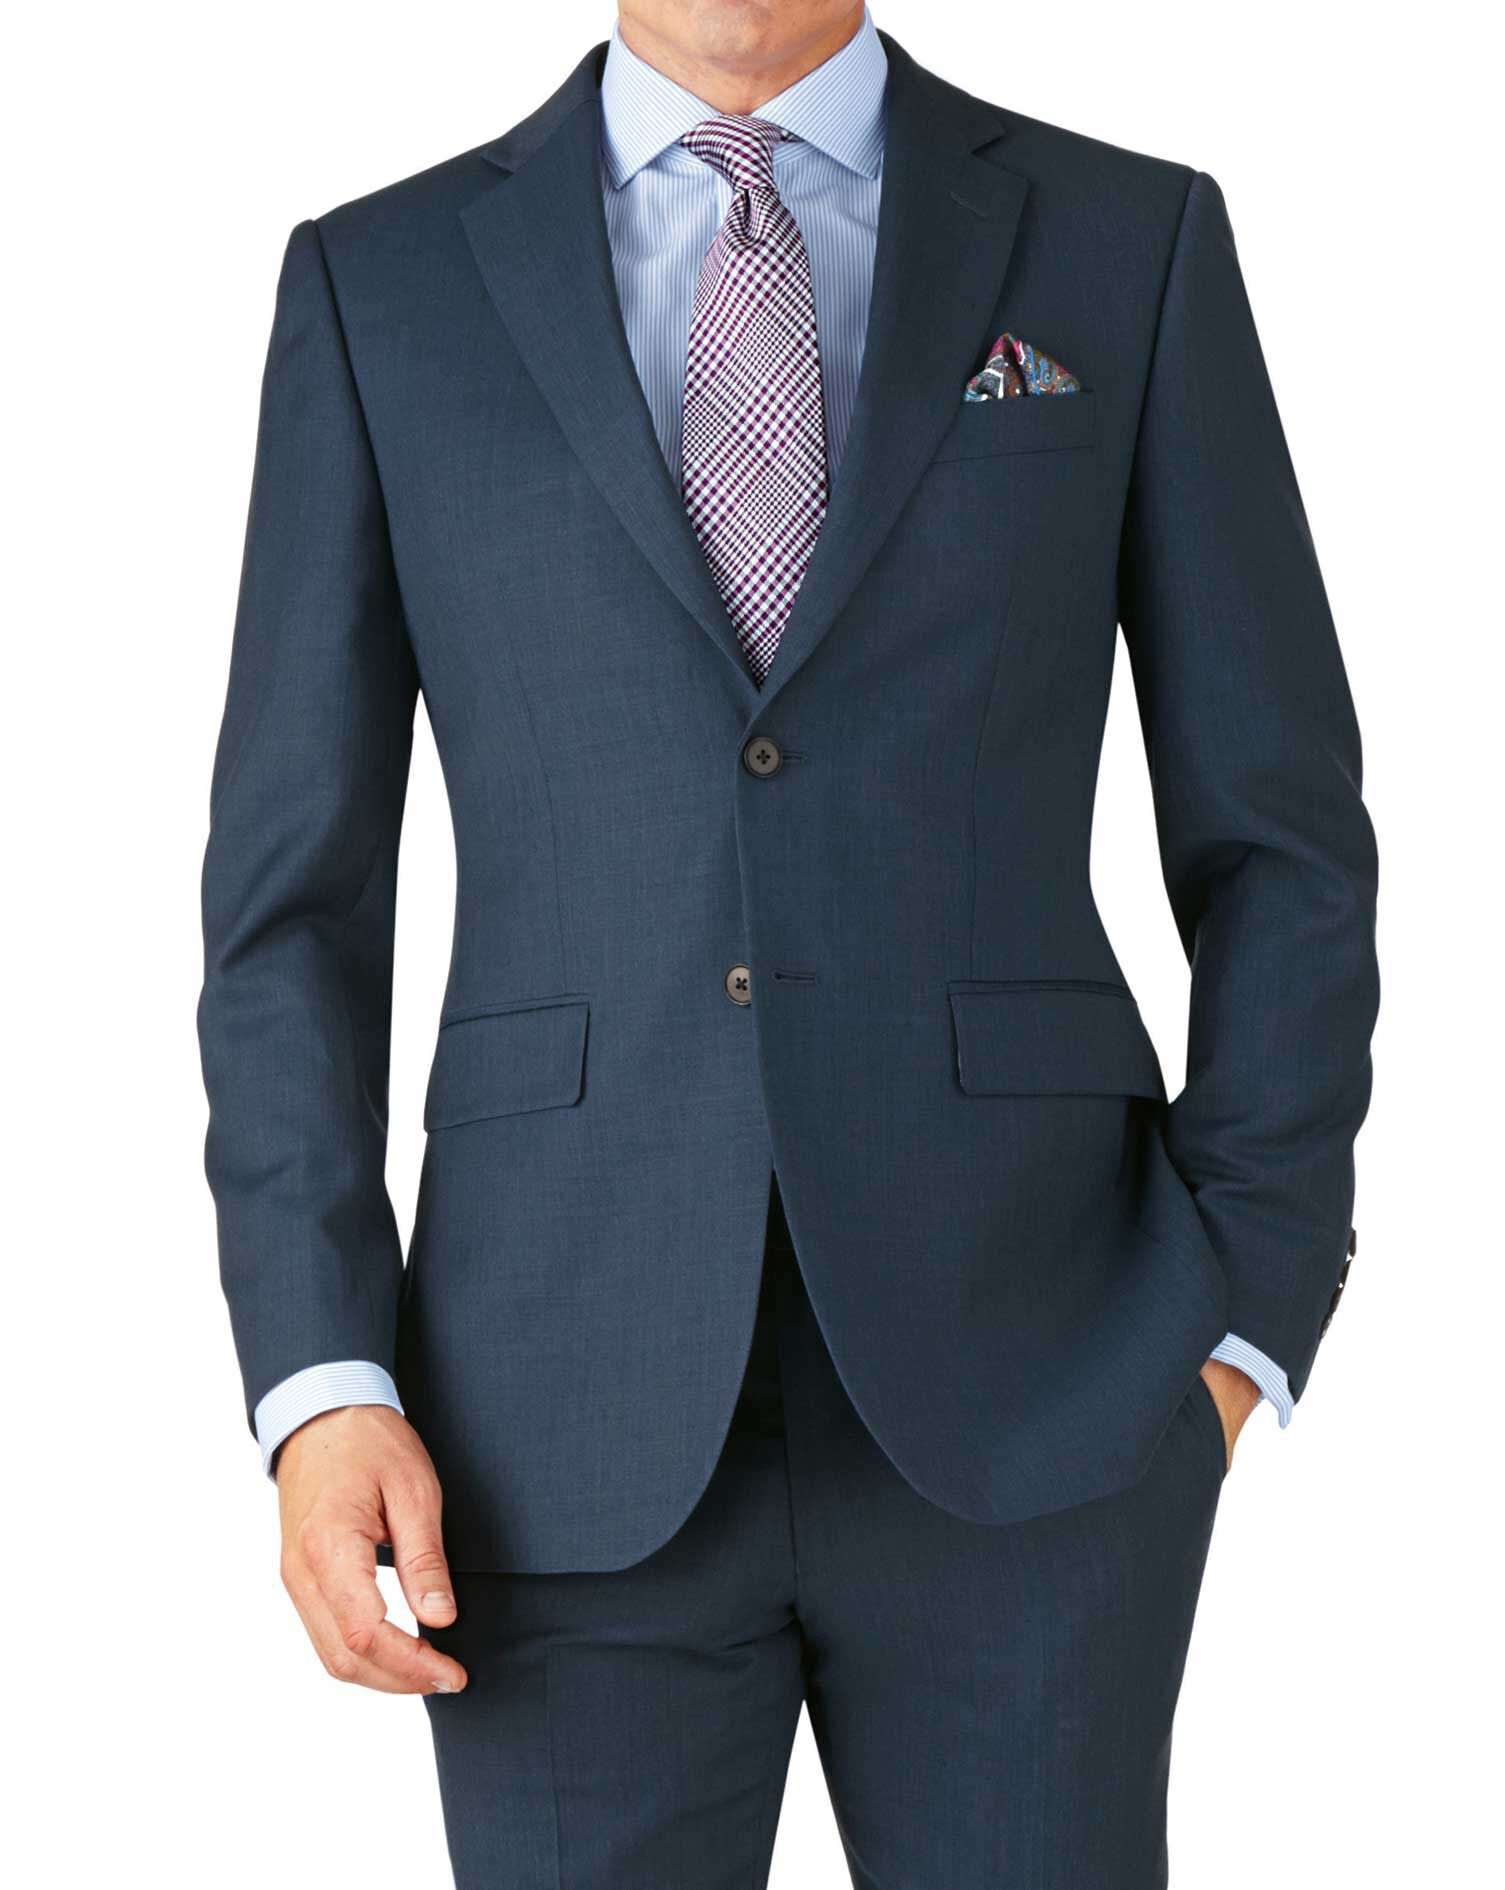 Blue Slim Fit Twill Business Suit Wool Jacket Size 42 Regular by Charles Tyrwhitt